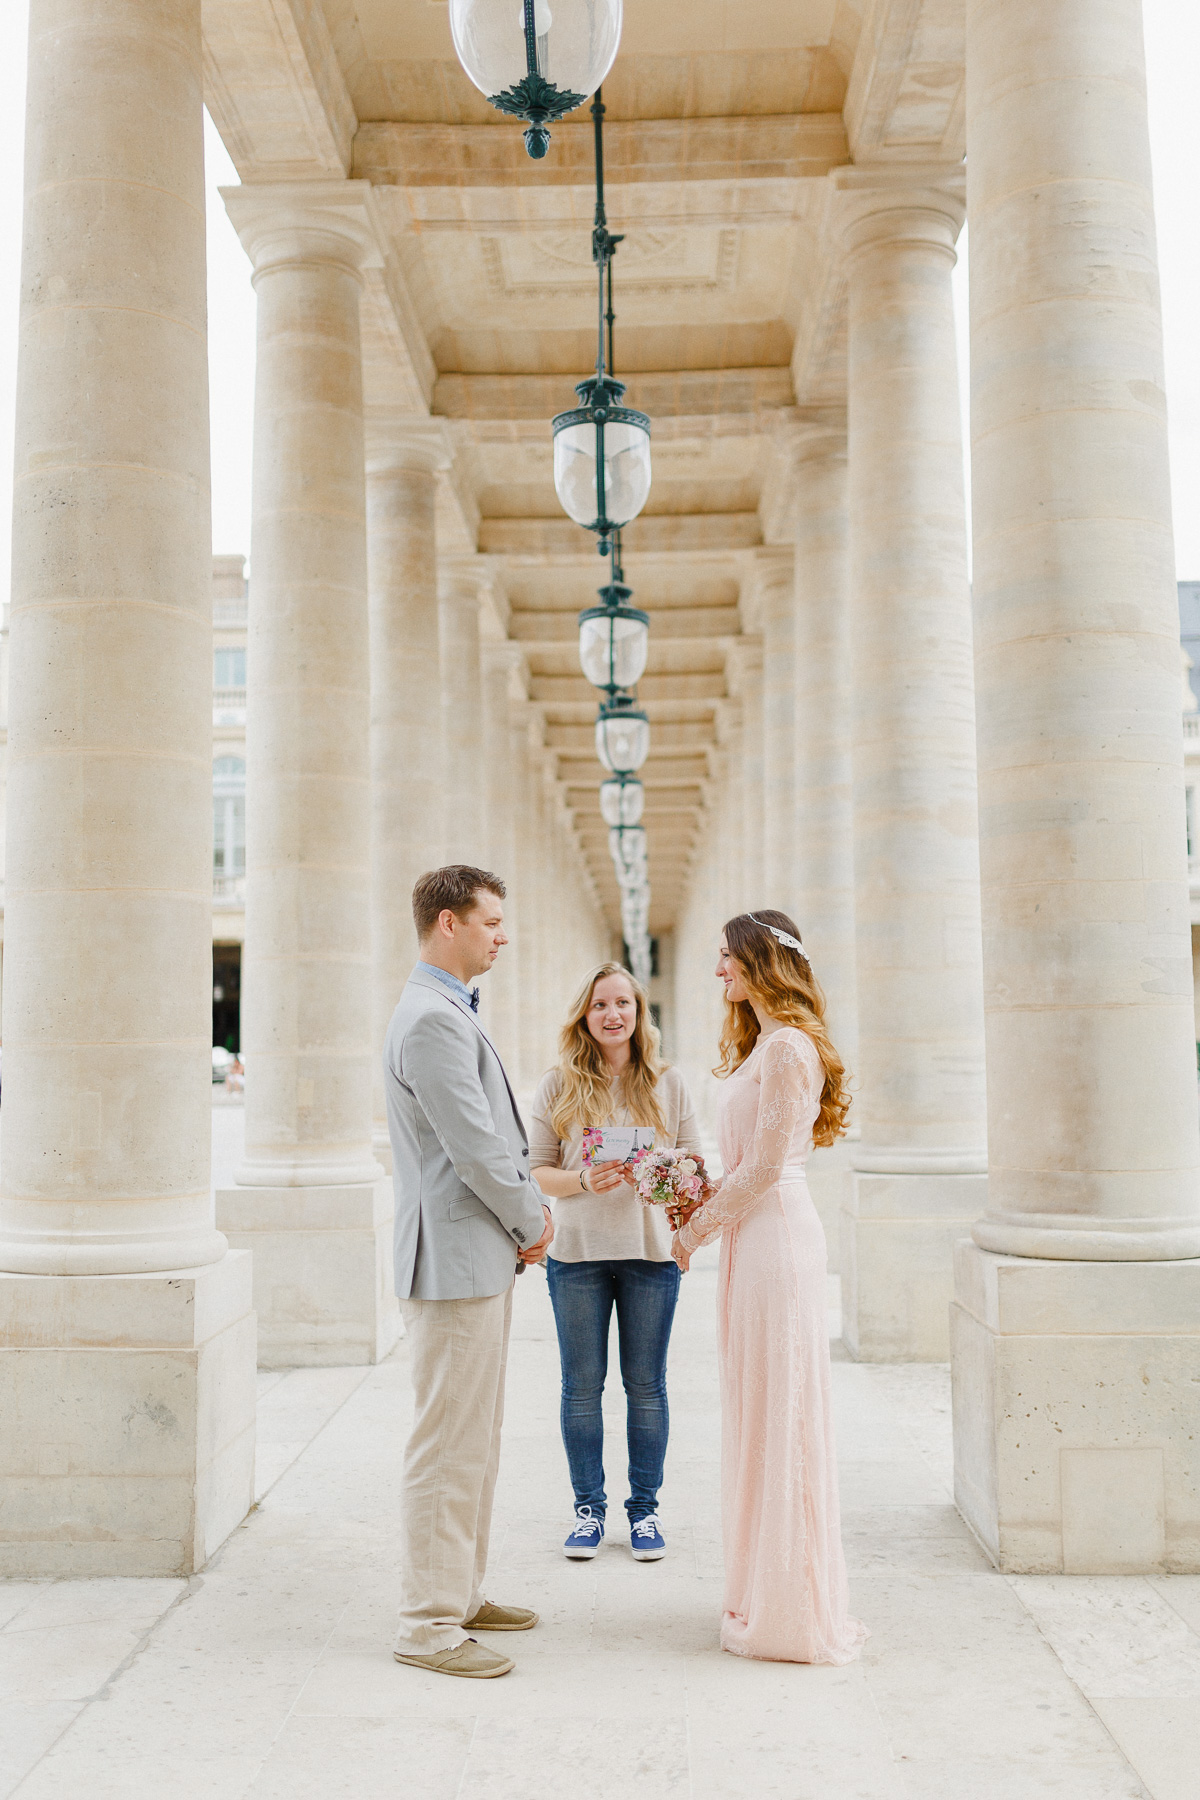 irinaundchris_elopement_honeymoon_paris_036